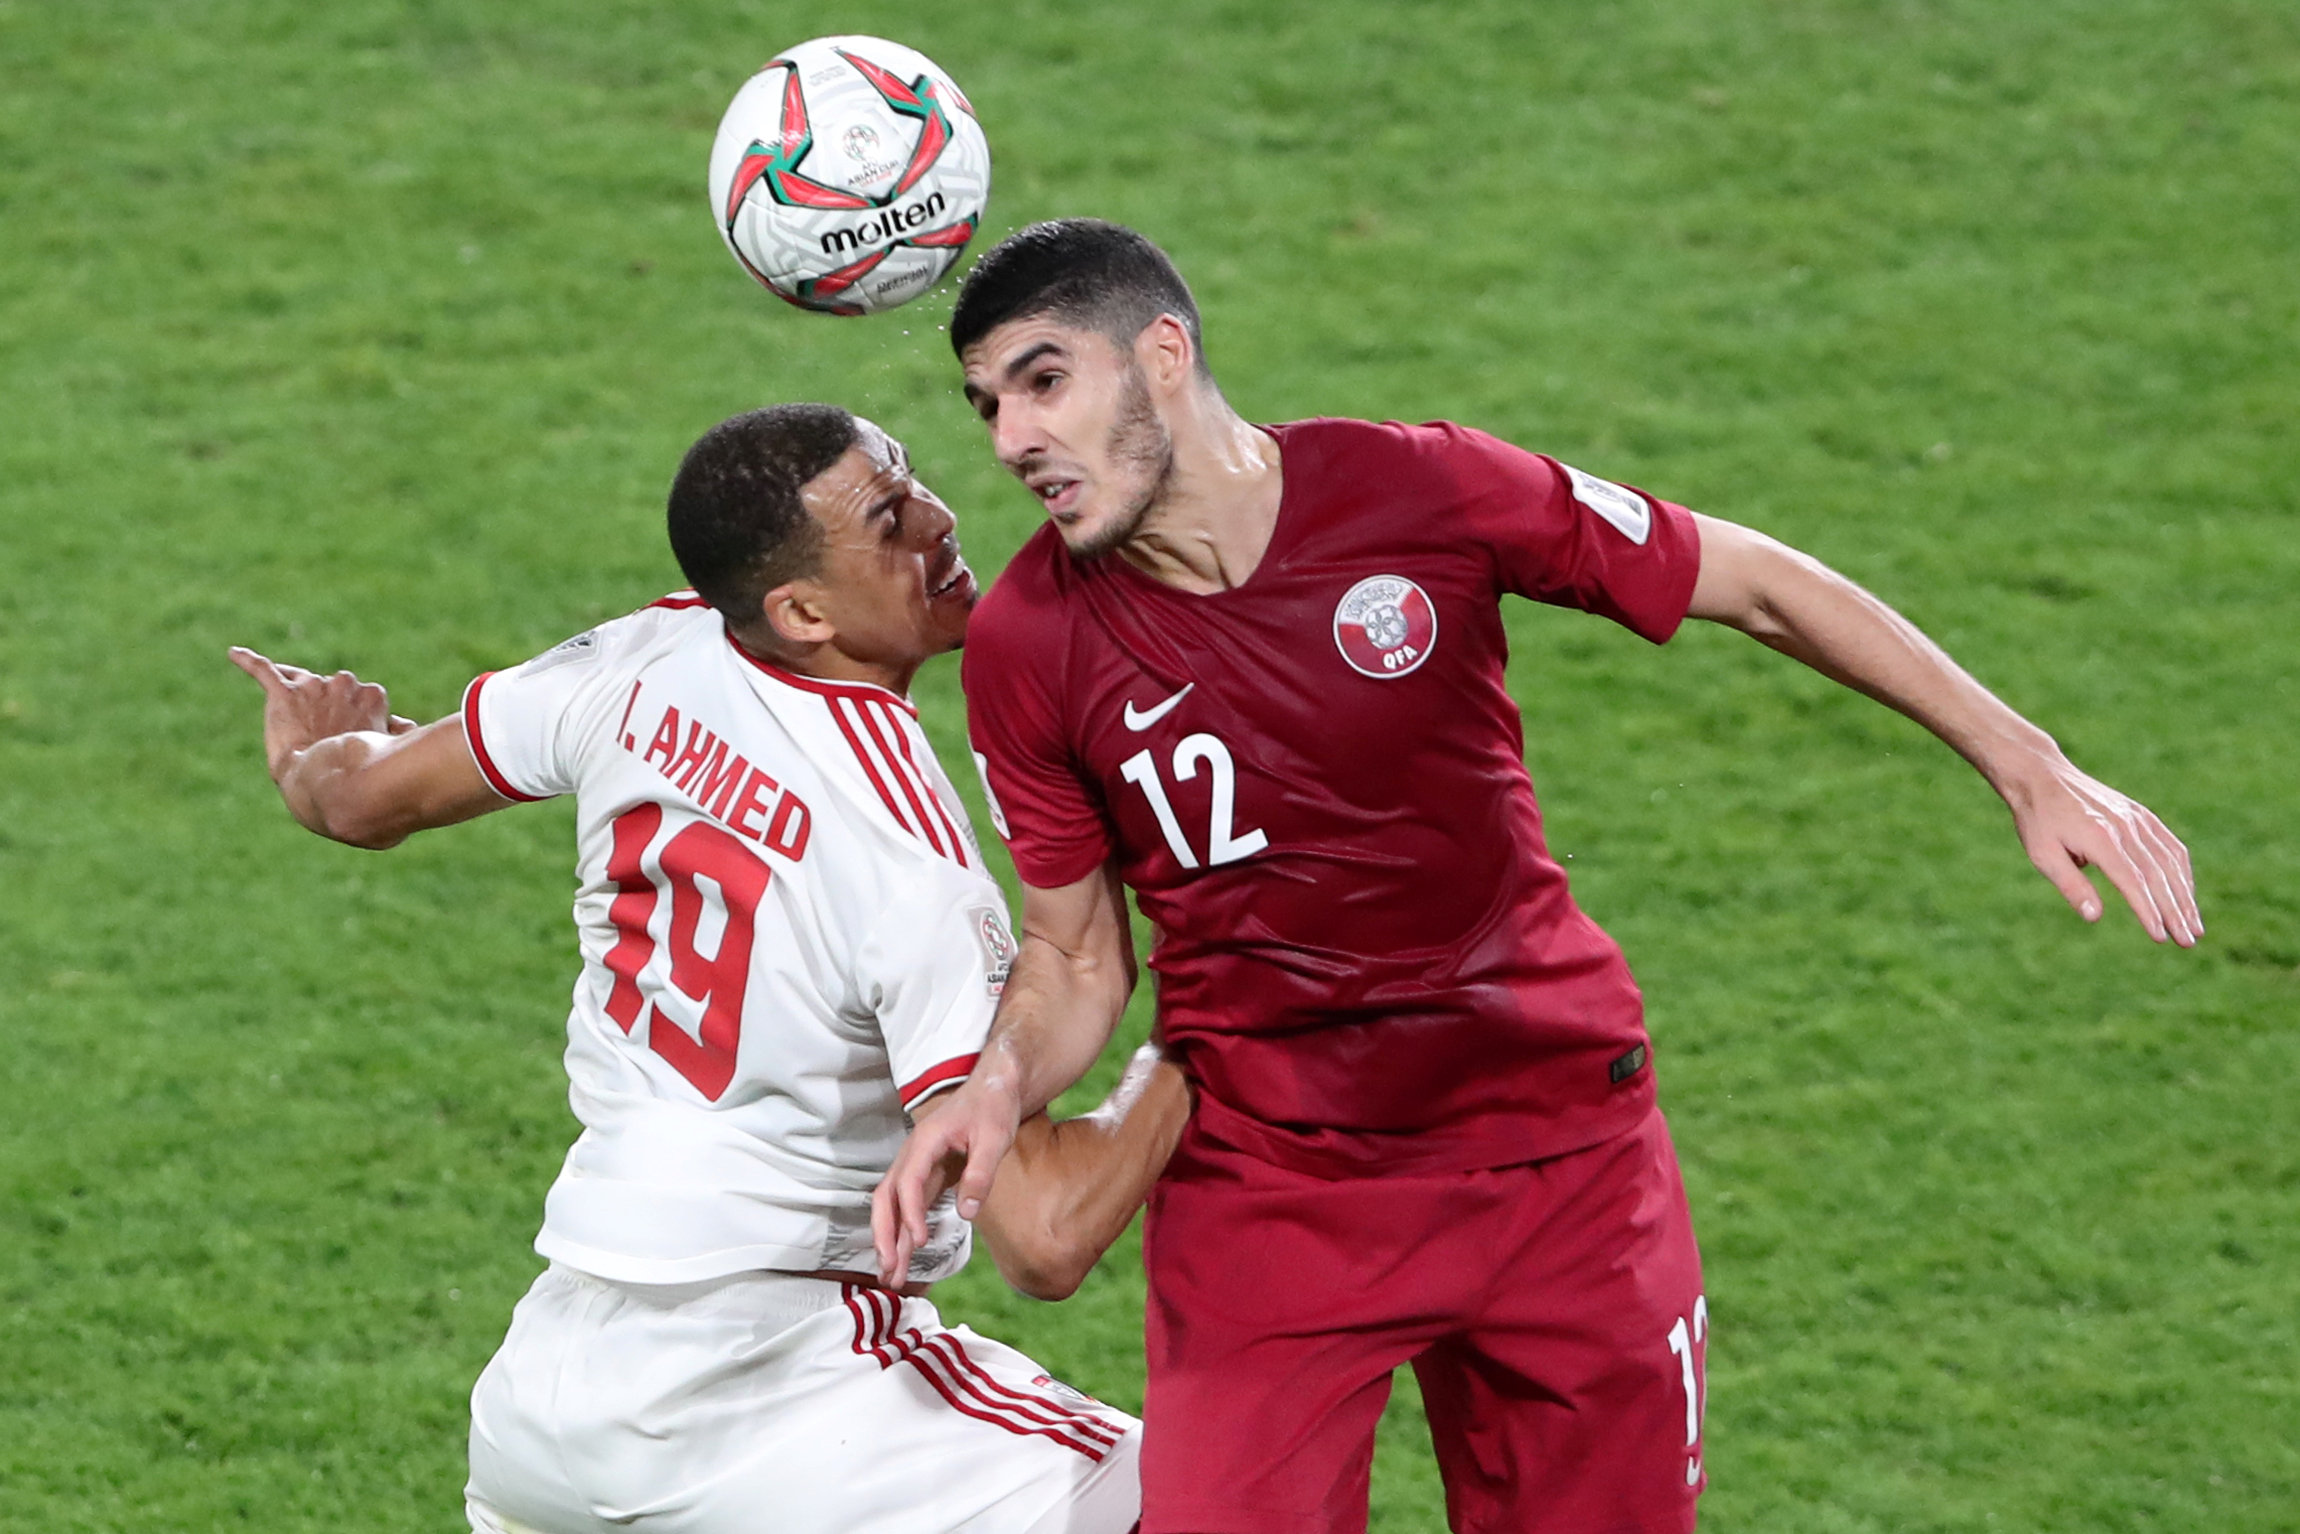 2019-01-29T152953Z_901312969_RC184DAB7700_RTRMADP_3_SOCCER-ASIANCUP-QAT-ARE